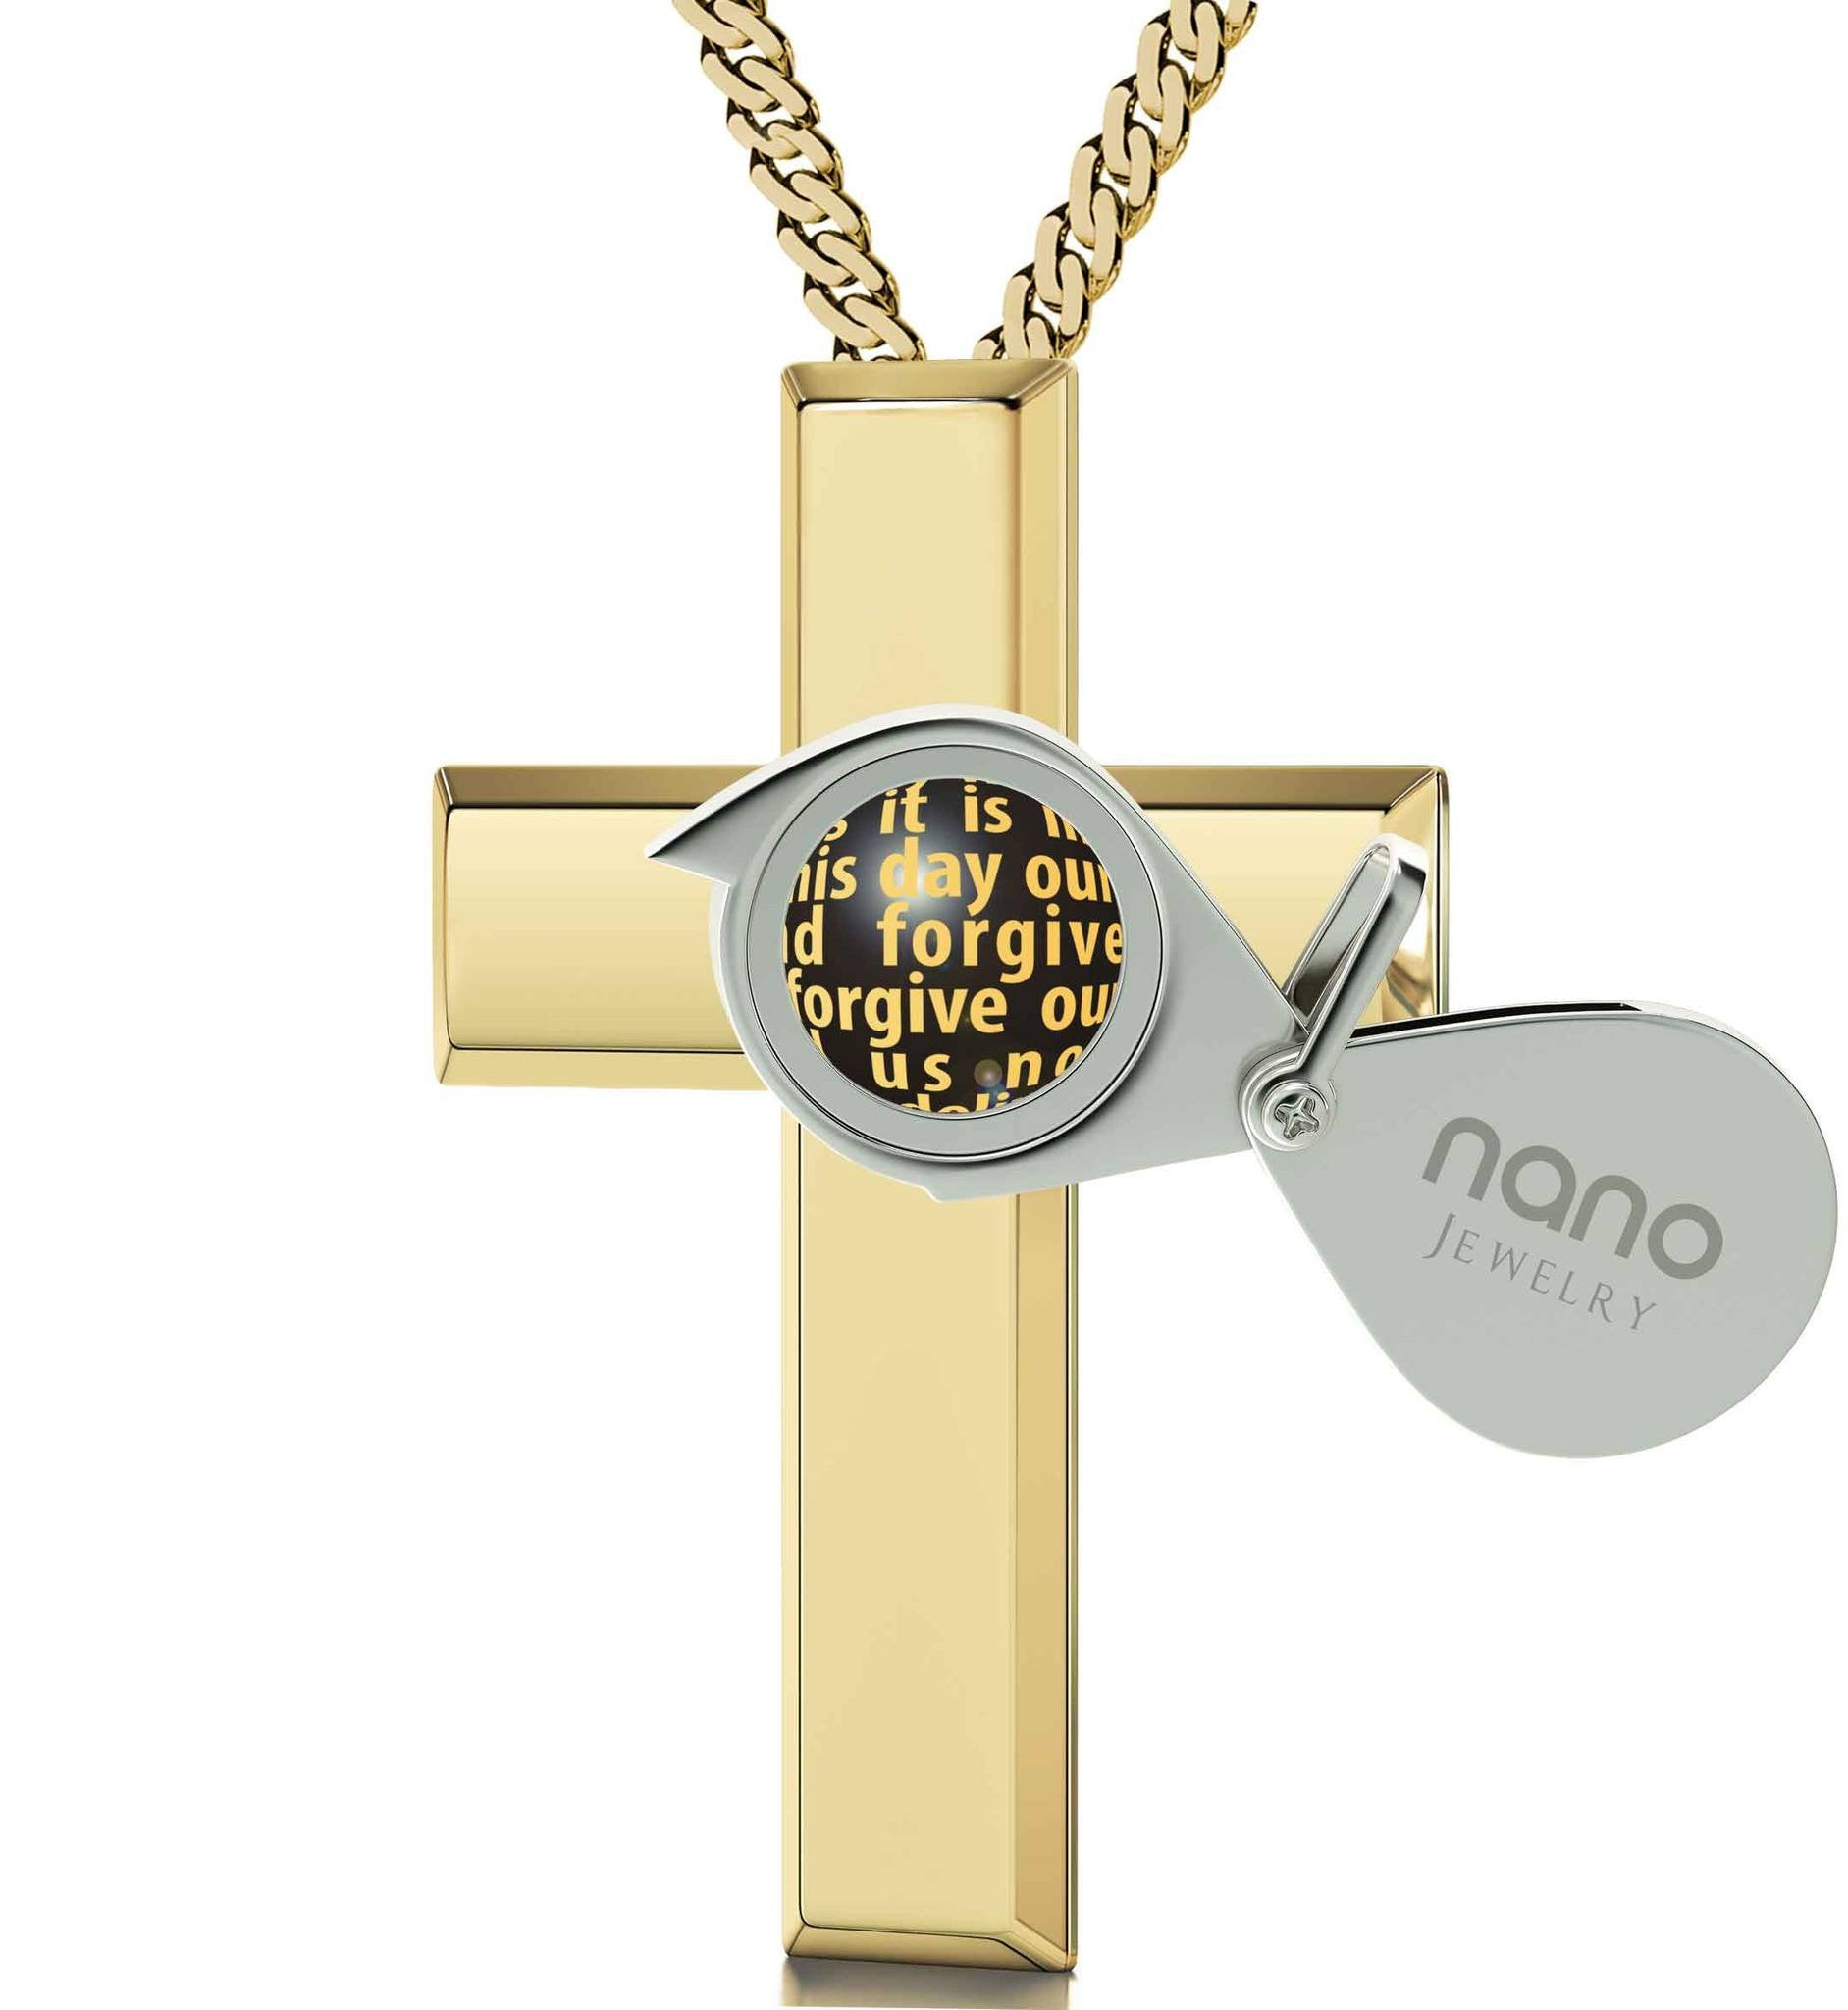 Lord's Prayer Necklace Xmas Ideas For Her Christian Jewelry For Women Engraved Pendants